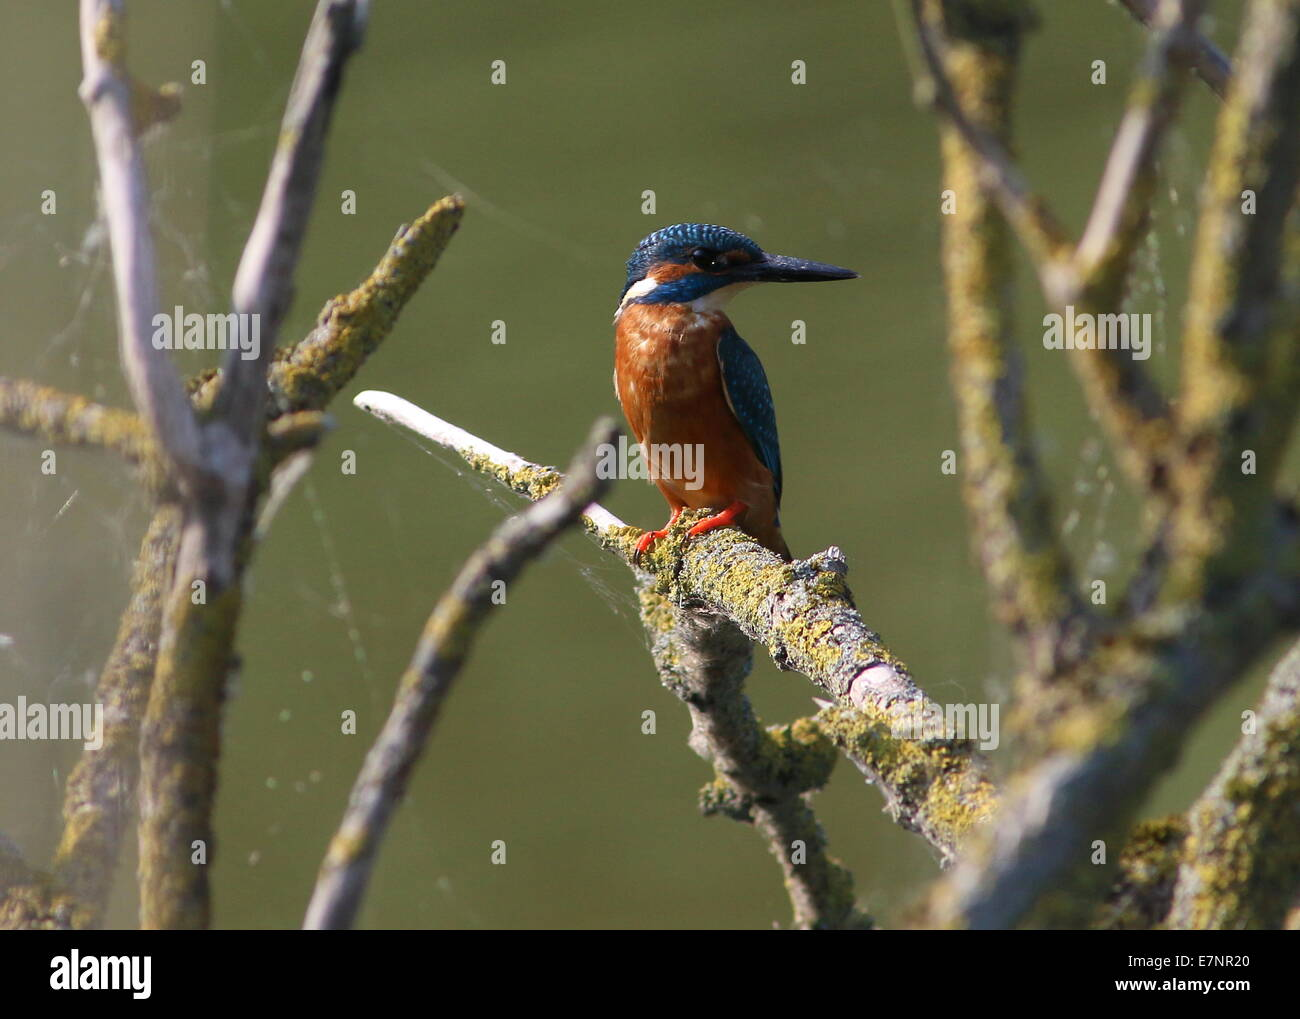 Female Eurasian Kingfisher (Alcedo Atthis) posing among a jumble of  branches while fishing - Stock Image